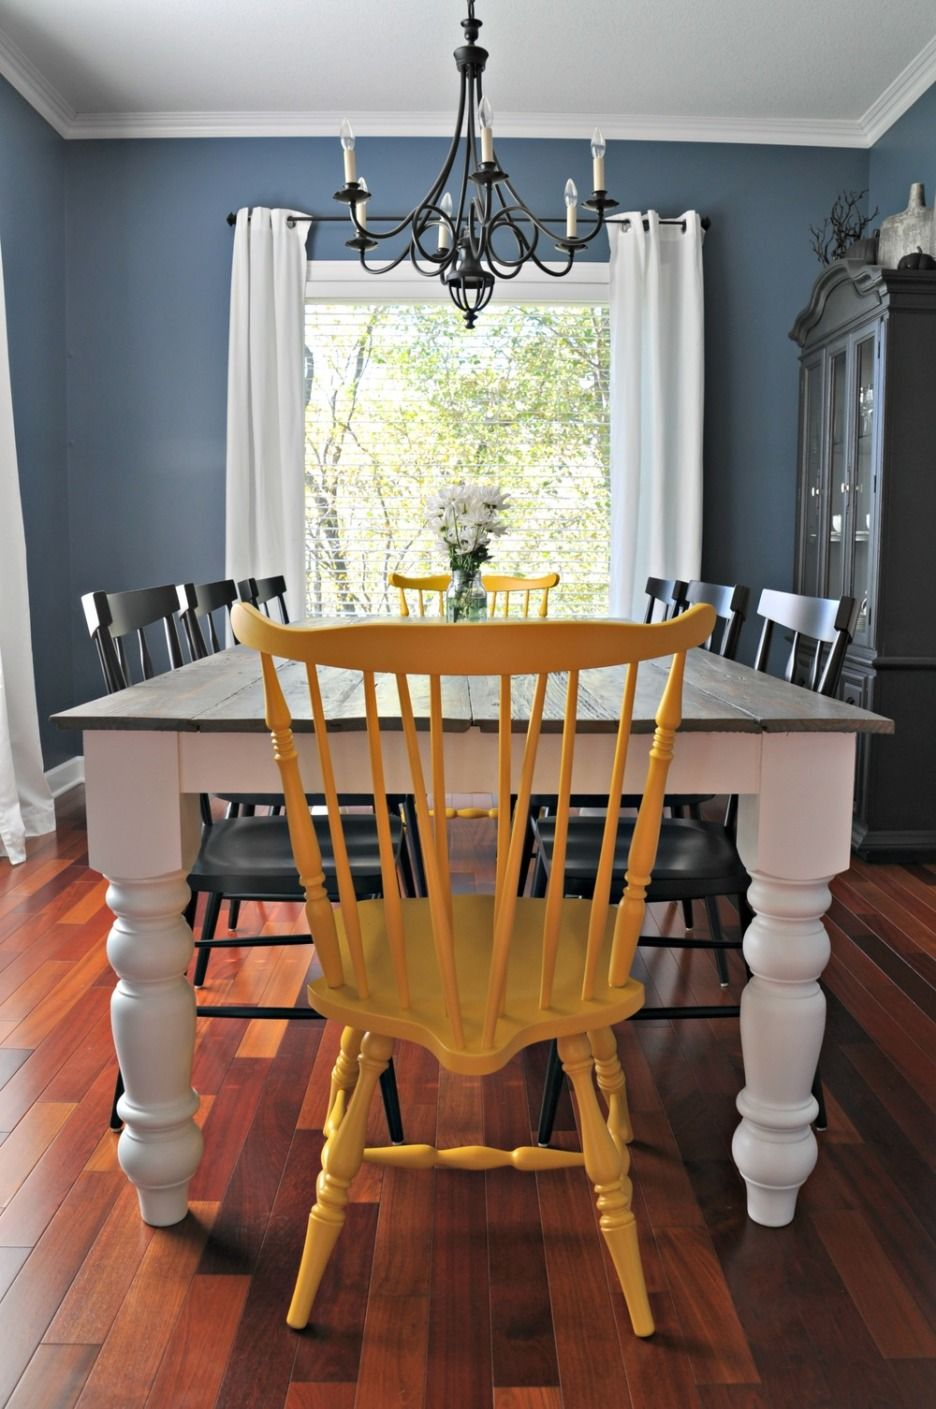 Top 29 Diy Ideas Adding Rustic Farmhouse Feels To Kitchen: Dining Room, : Rustic Luxury Dining Room Decoration With Granite Top Dining Table Des